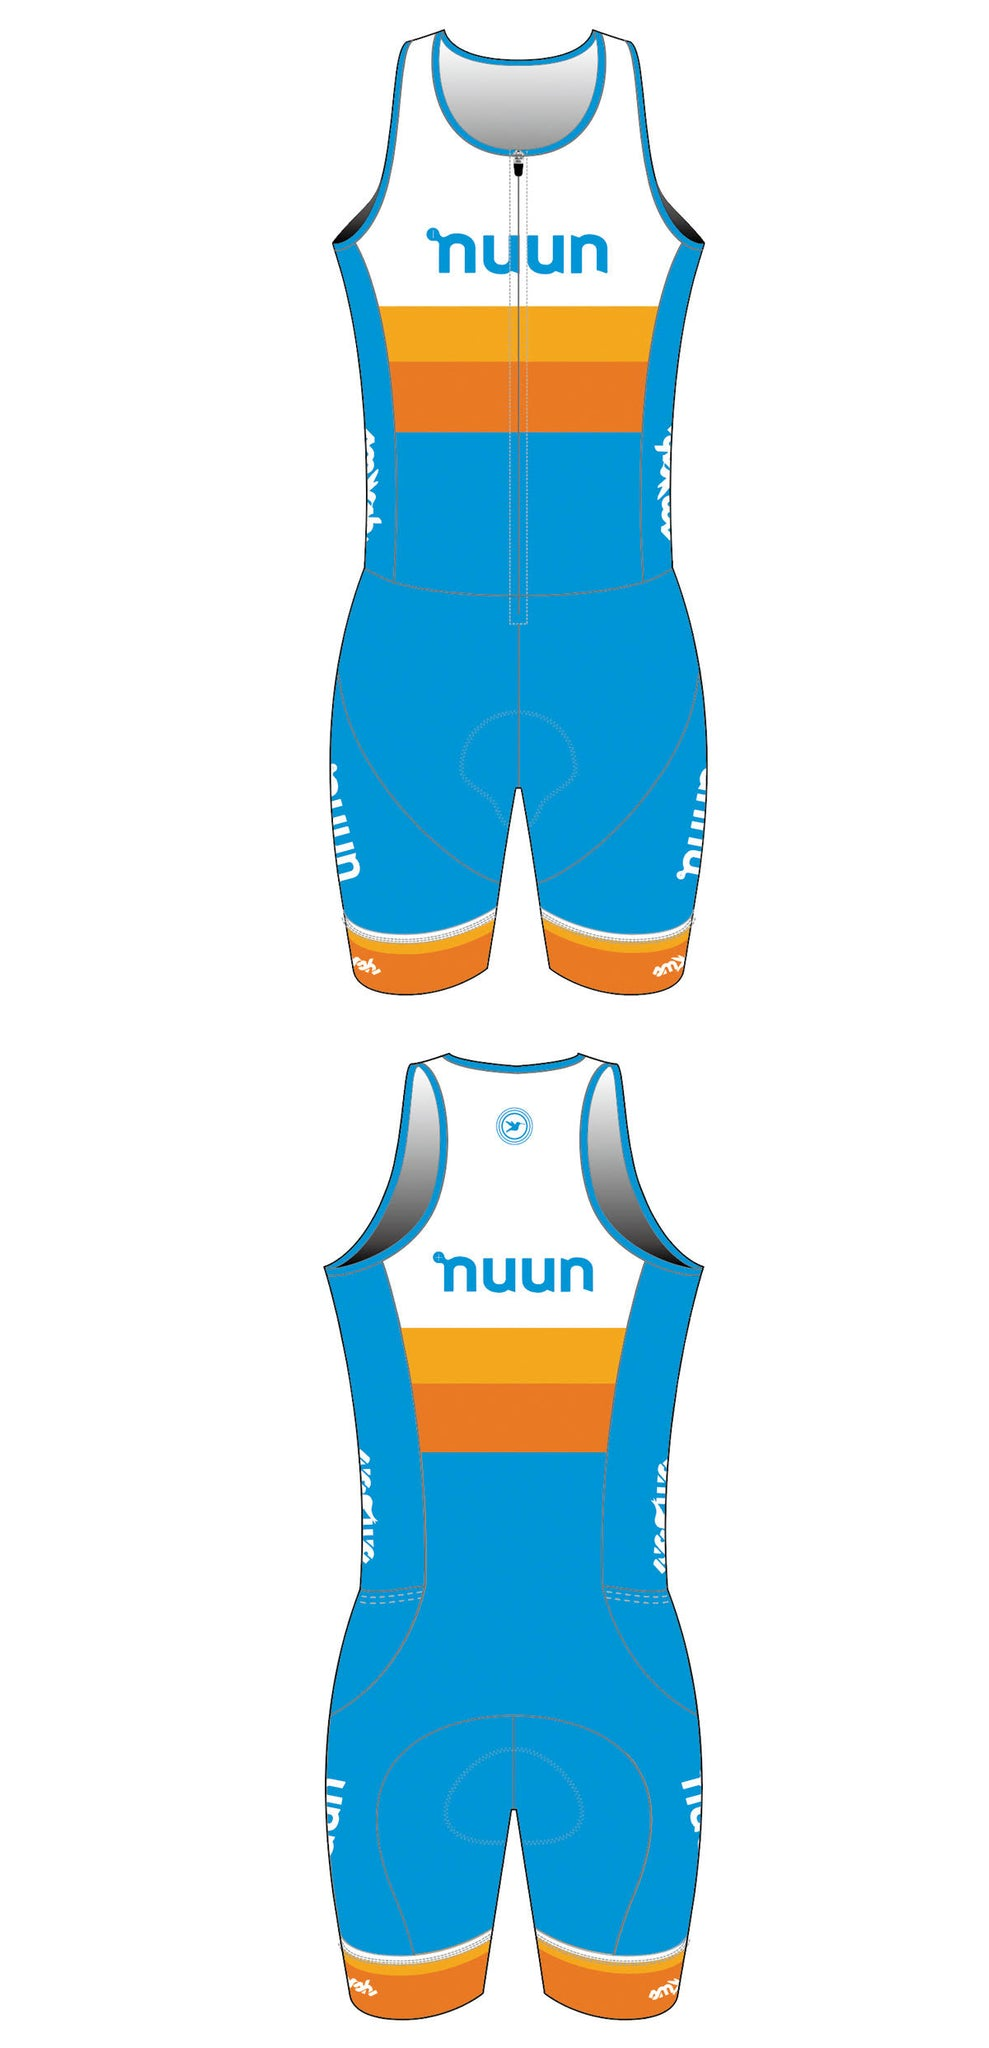 2021 Nuun Hydration Women's Sleeveless One-Piece Trisuit Pre-Order